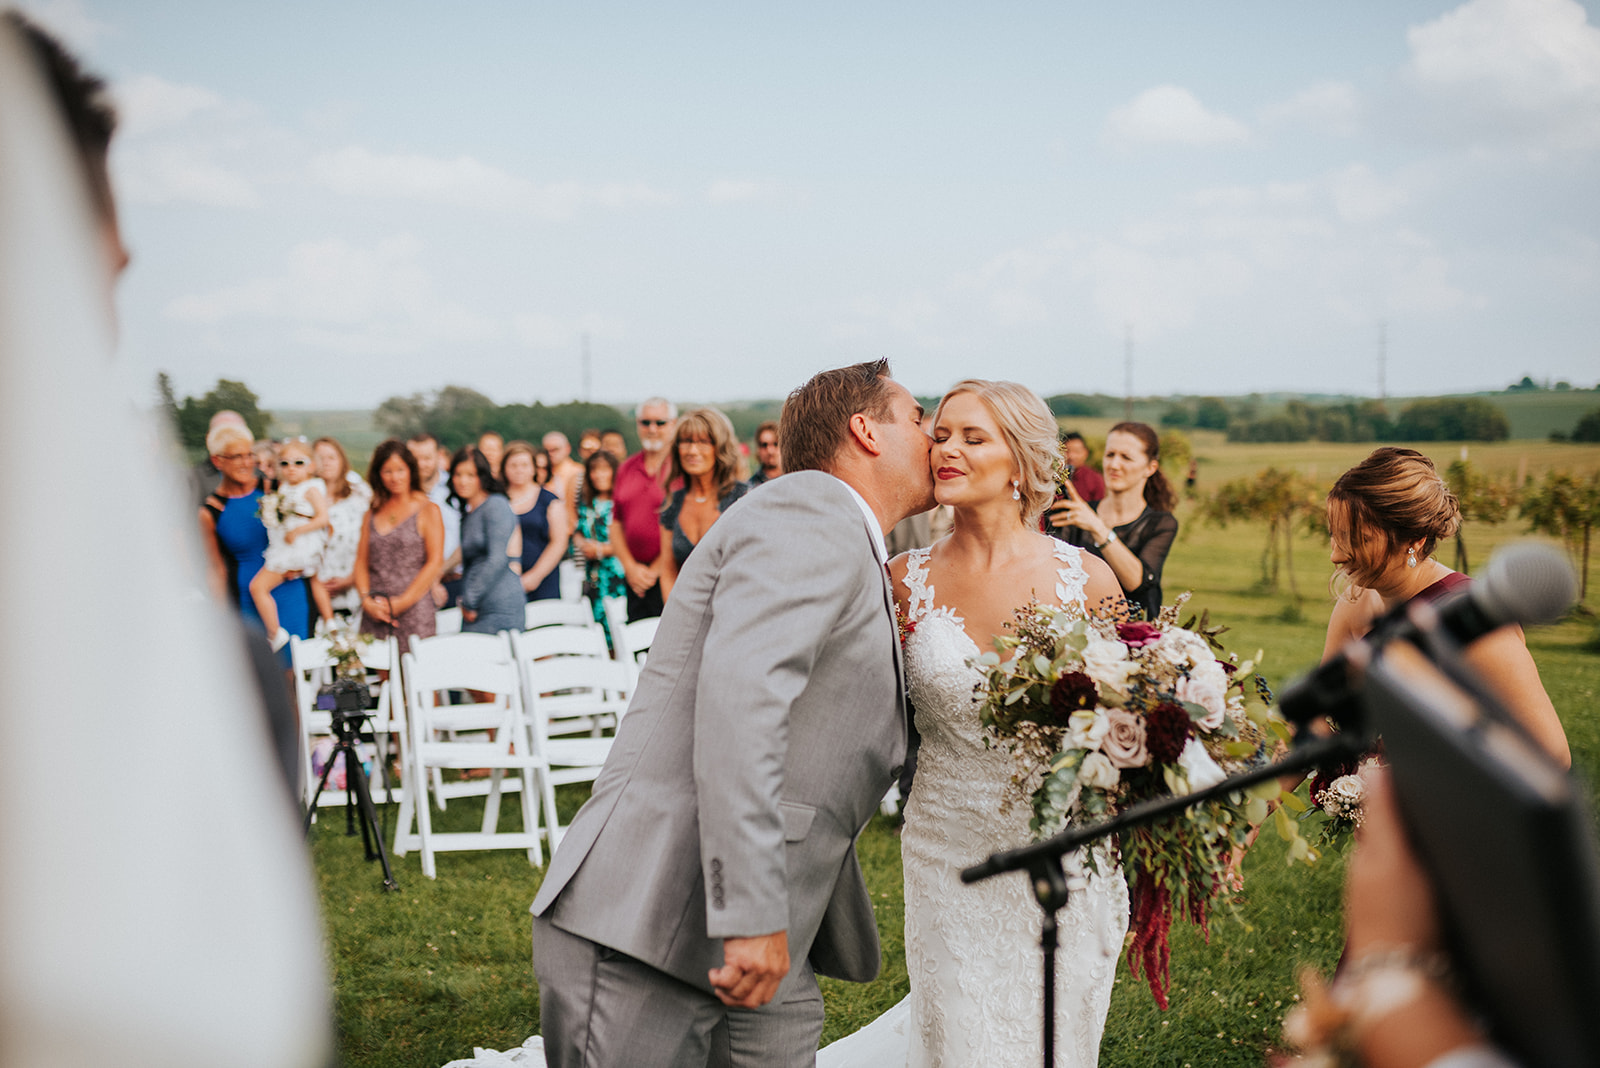 overthevineswisconsinwedding_0622.jpg